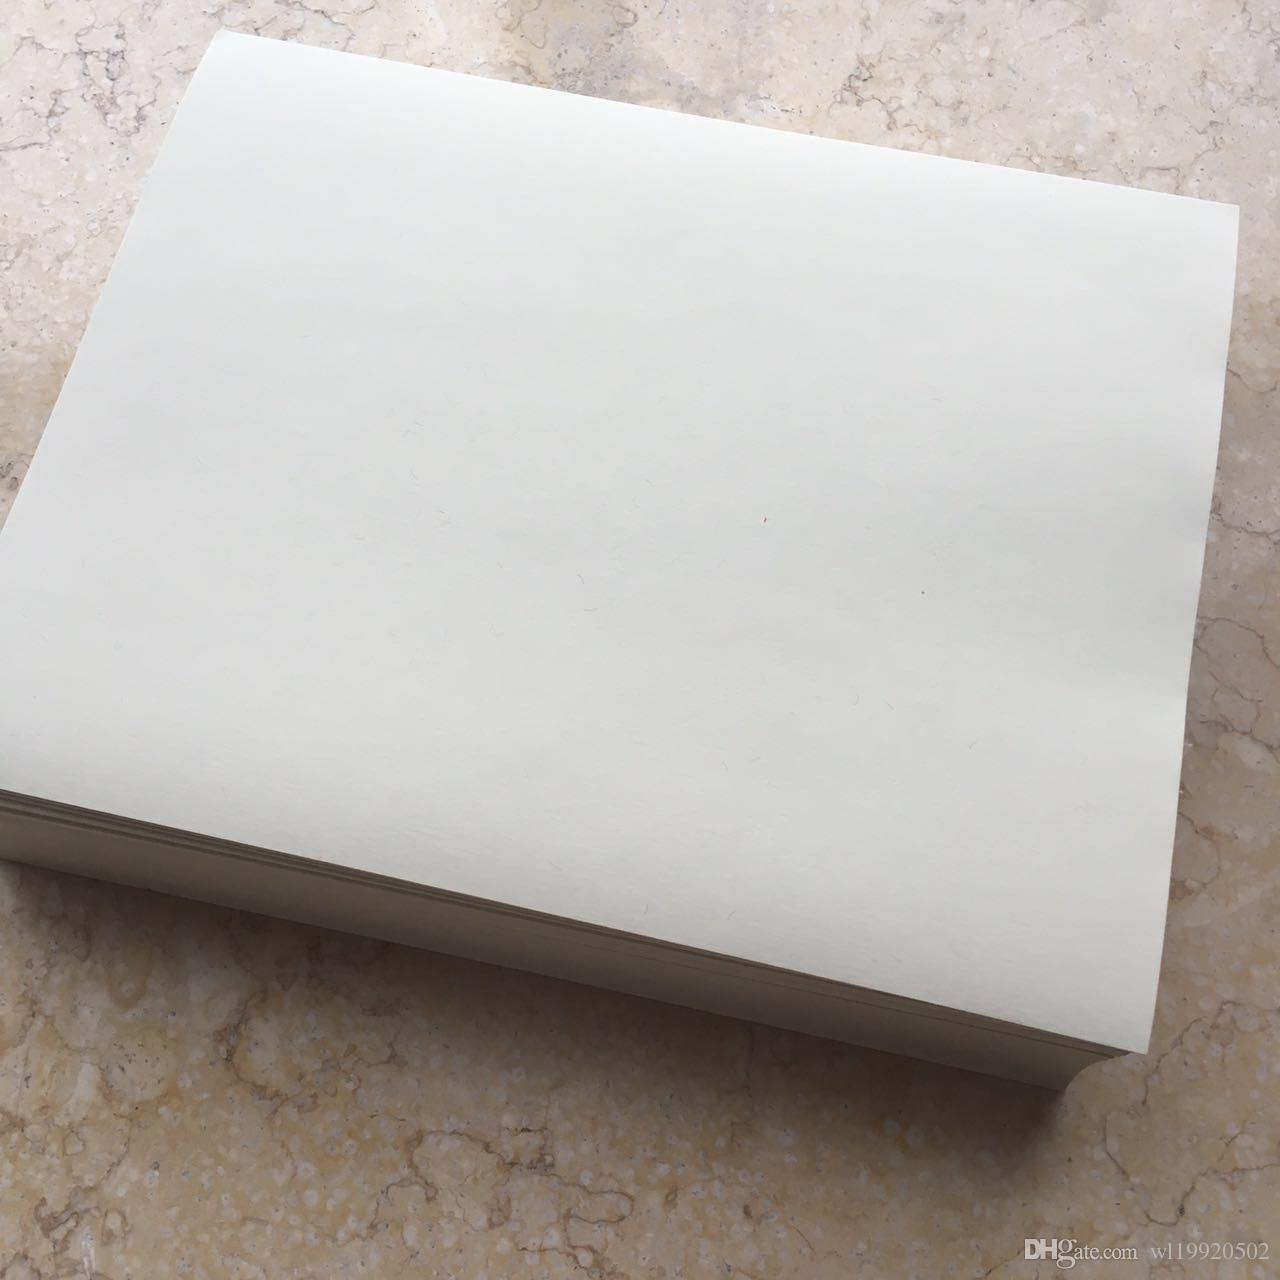 A4 size paper for pringting of security high quality with red and bule fiber white color samll moq